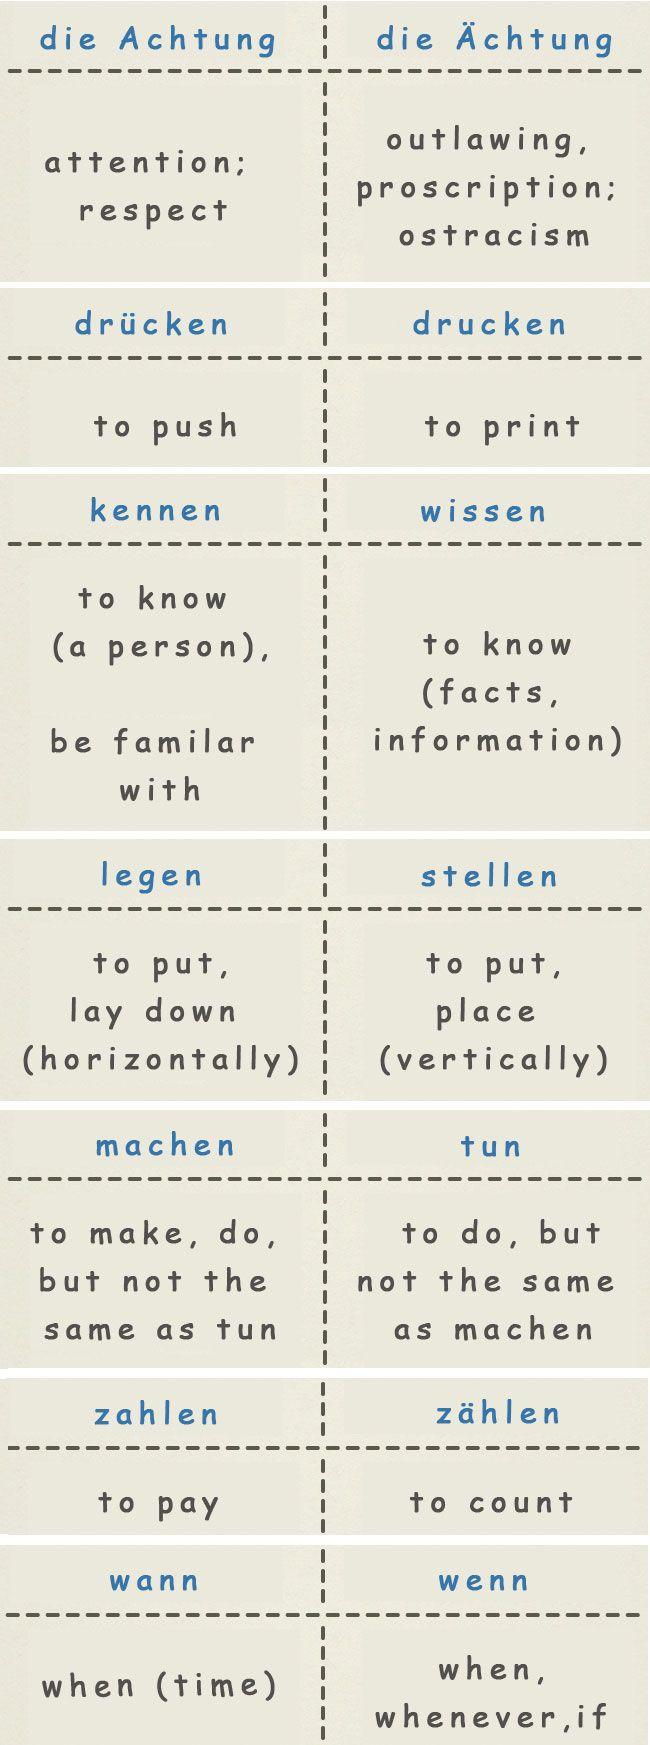 Confusing Word Pairs in German - learn German,words,vocabulary,german